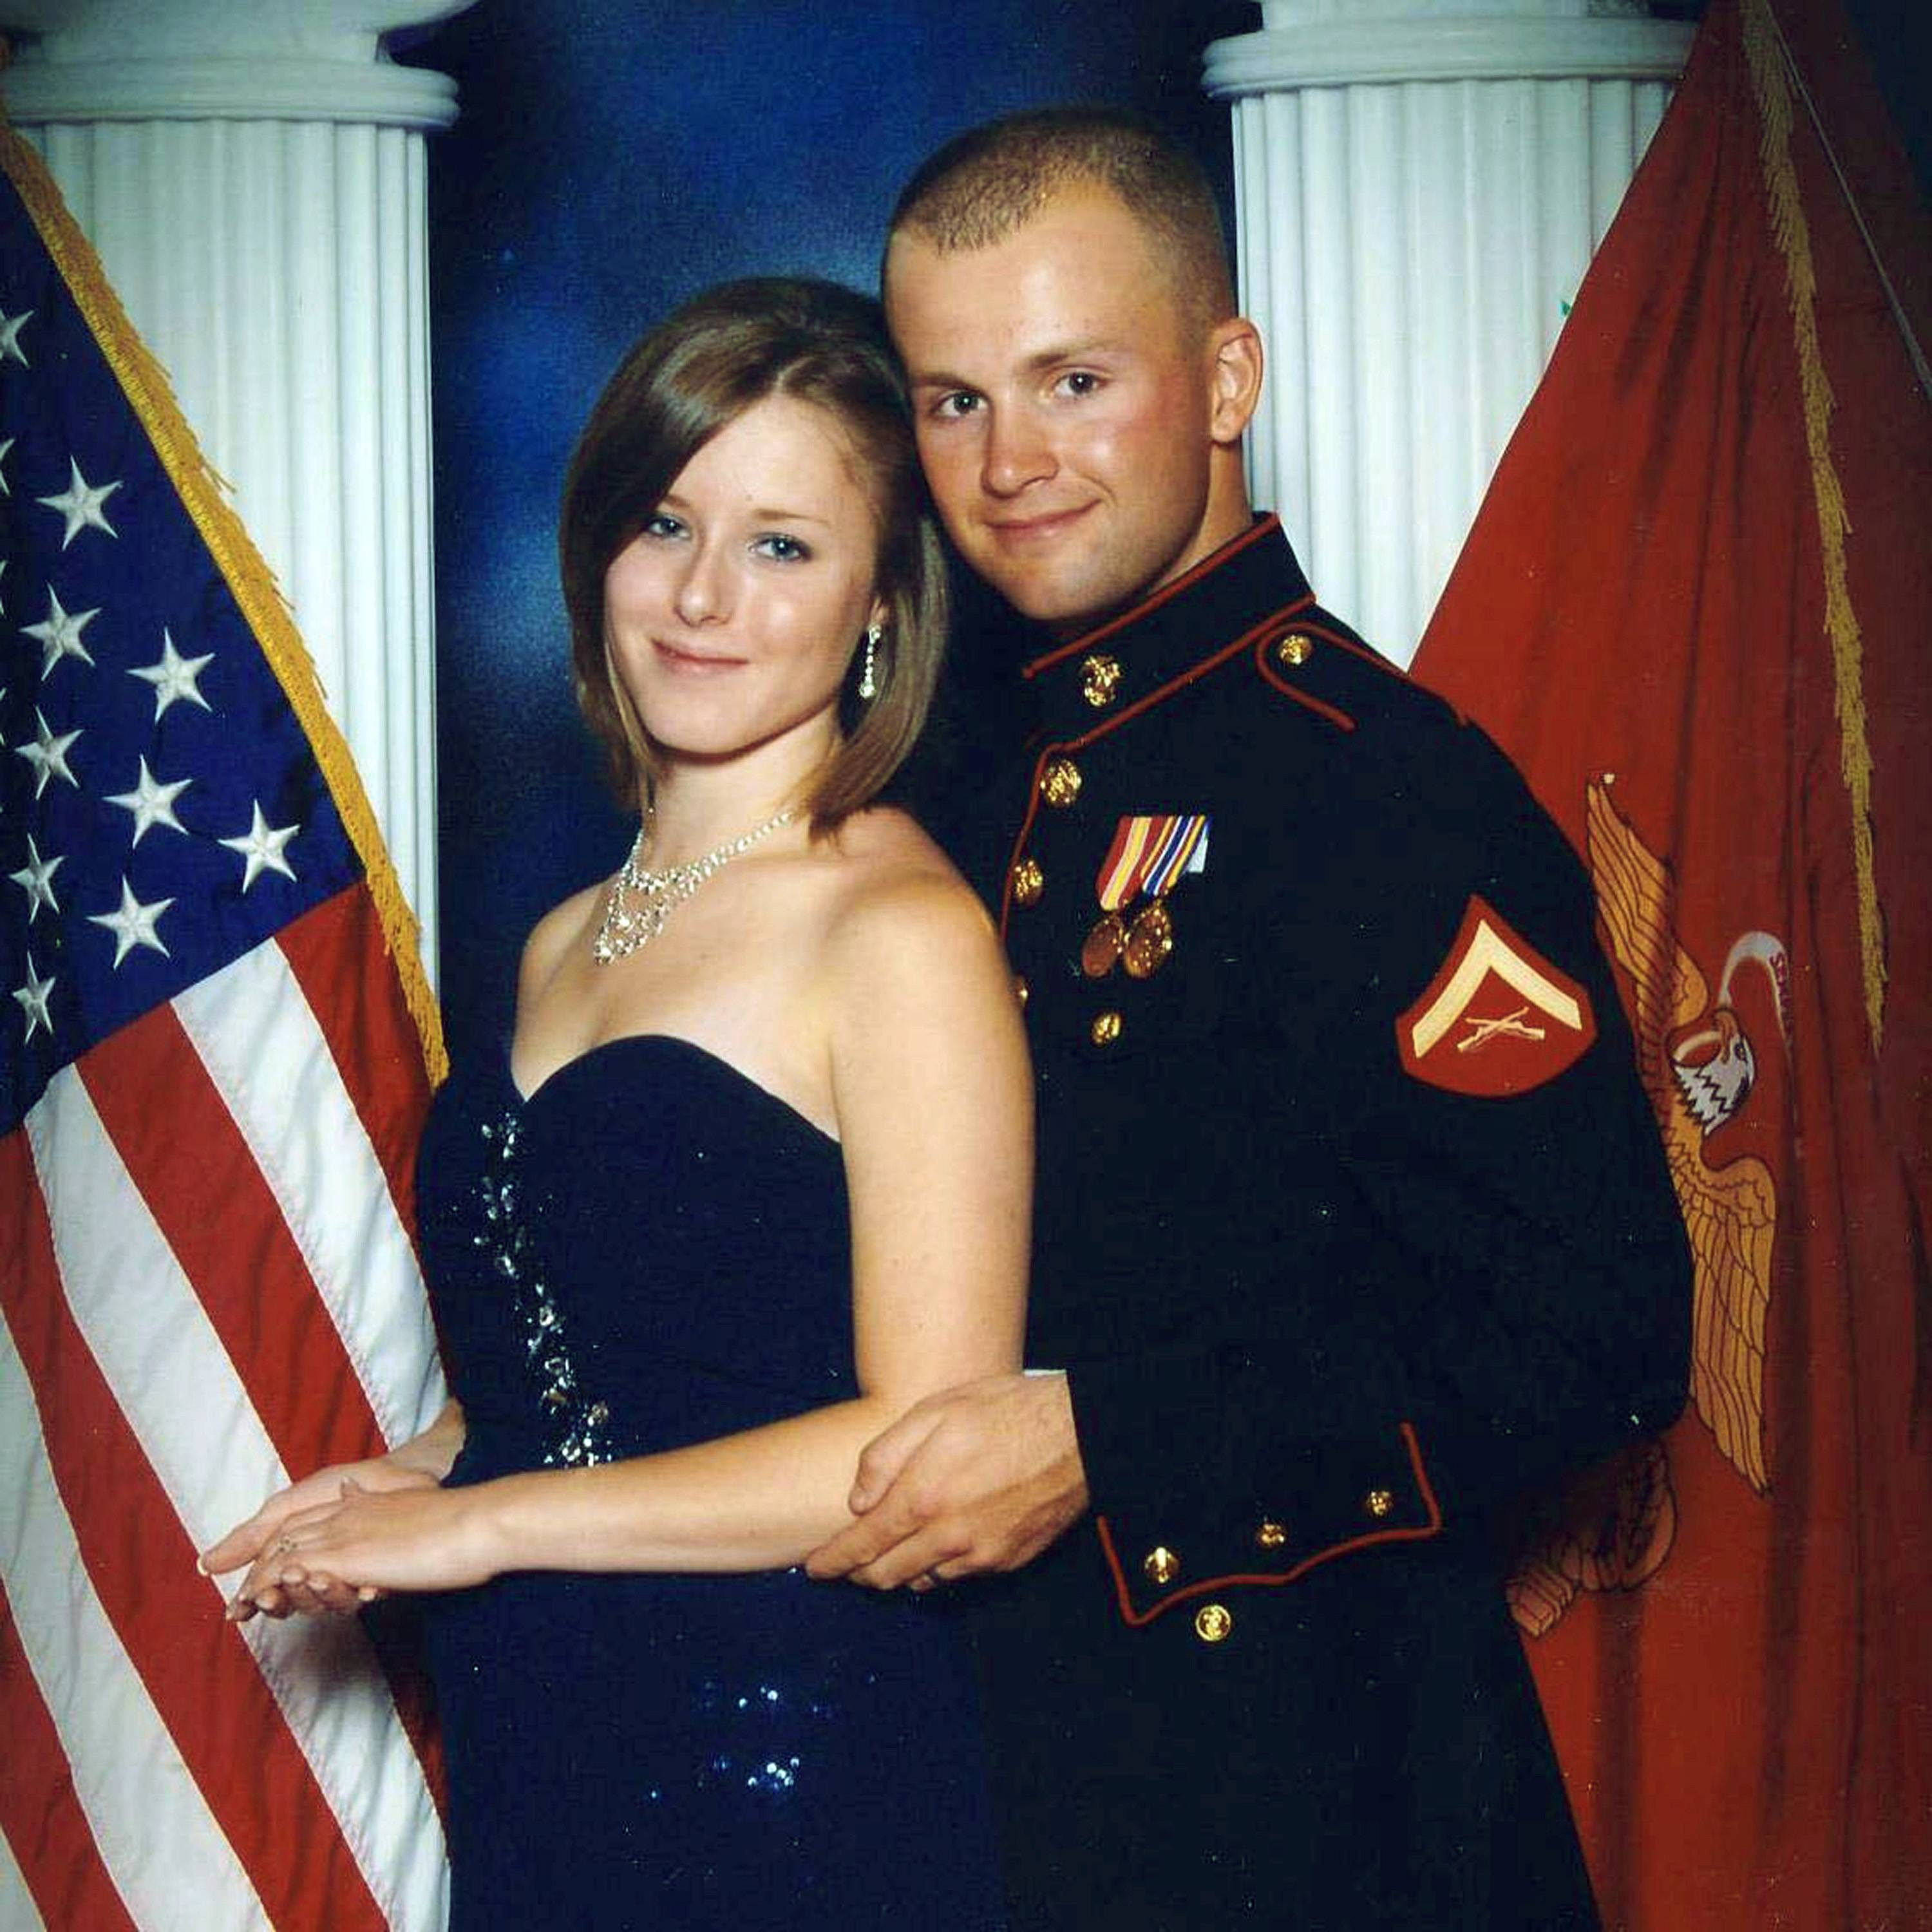 Erin Corwin, left, with her husband, Jonathan Wayne Corwin, a corporal in the U.S. Marine Corps. Erin Corwin disappeared after leaving her home on the Twentynine Palms Marine Corps base June 28, 2014.